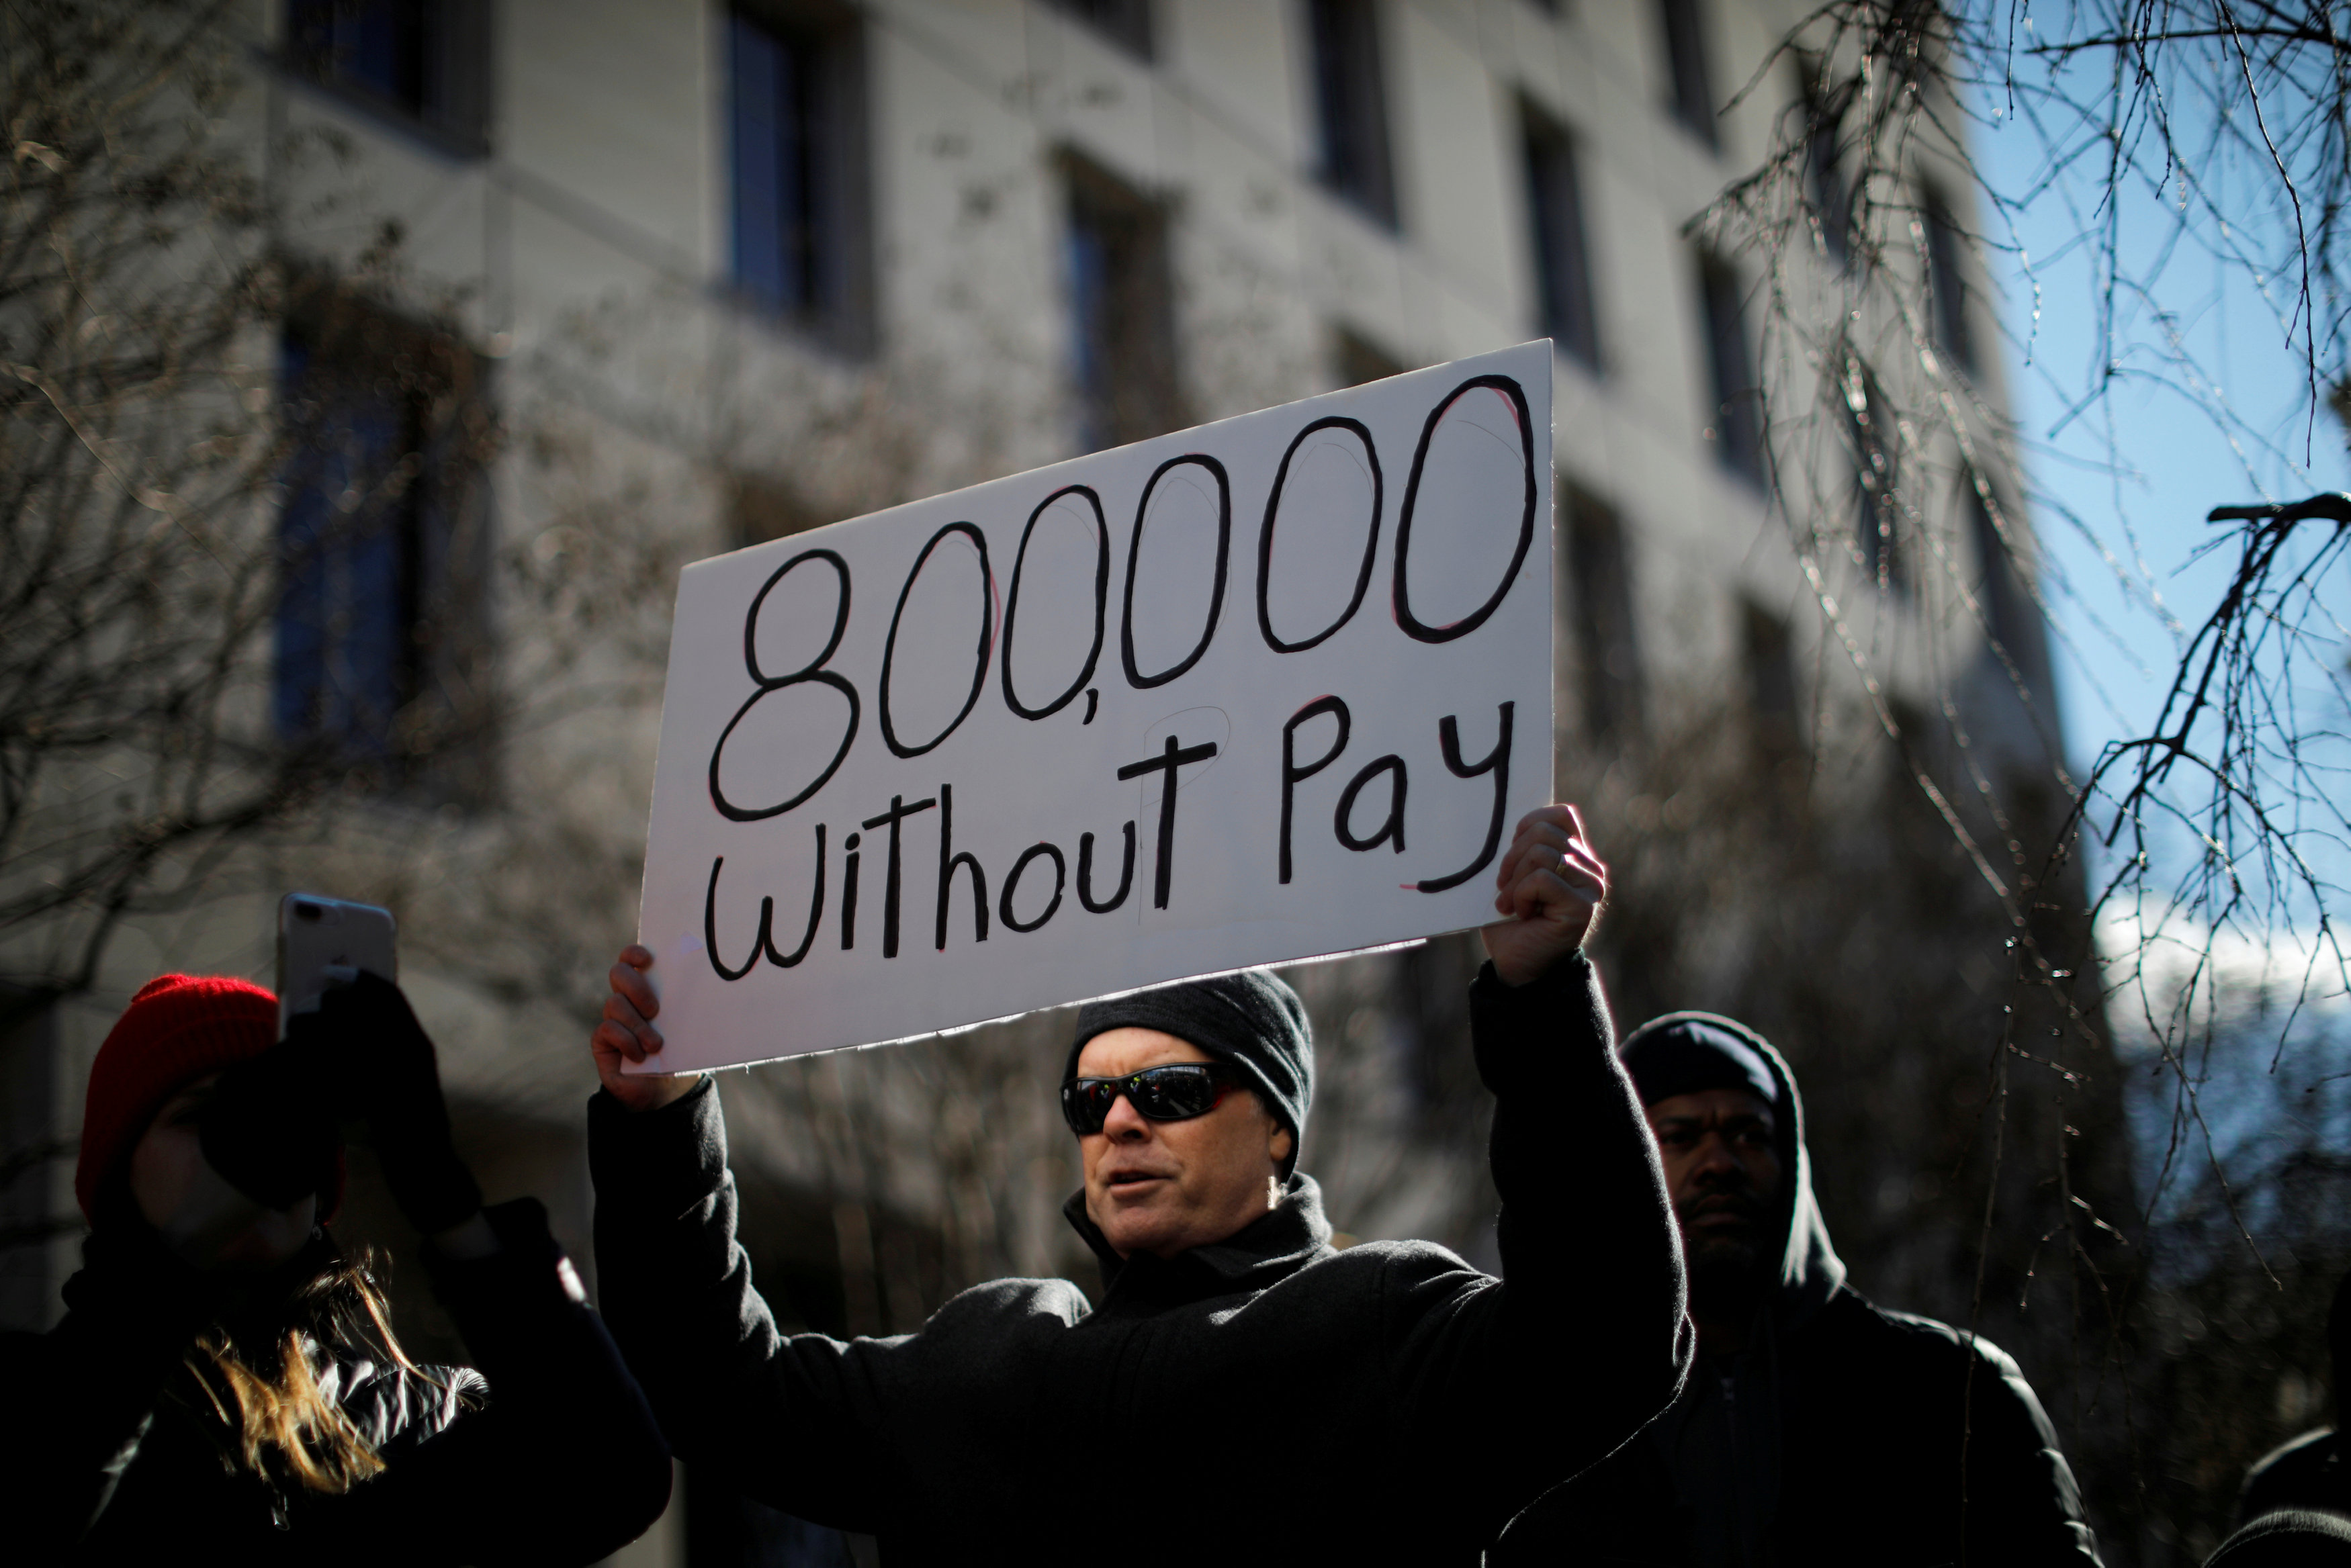 A demonstrator holds a sign, signifying hundreds of thousands of federal employees who won't be receiving their paychecks as a result of the partial government shutdown. REUTERS/Carlos Barria